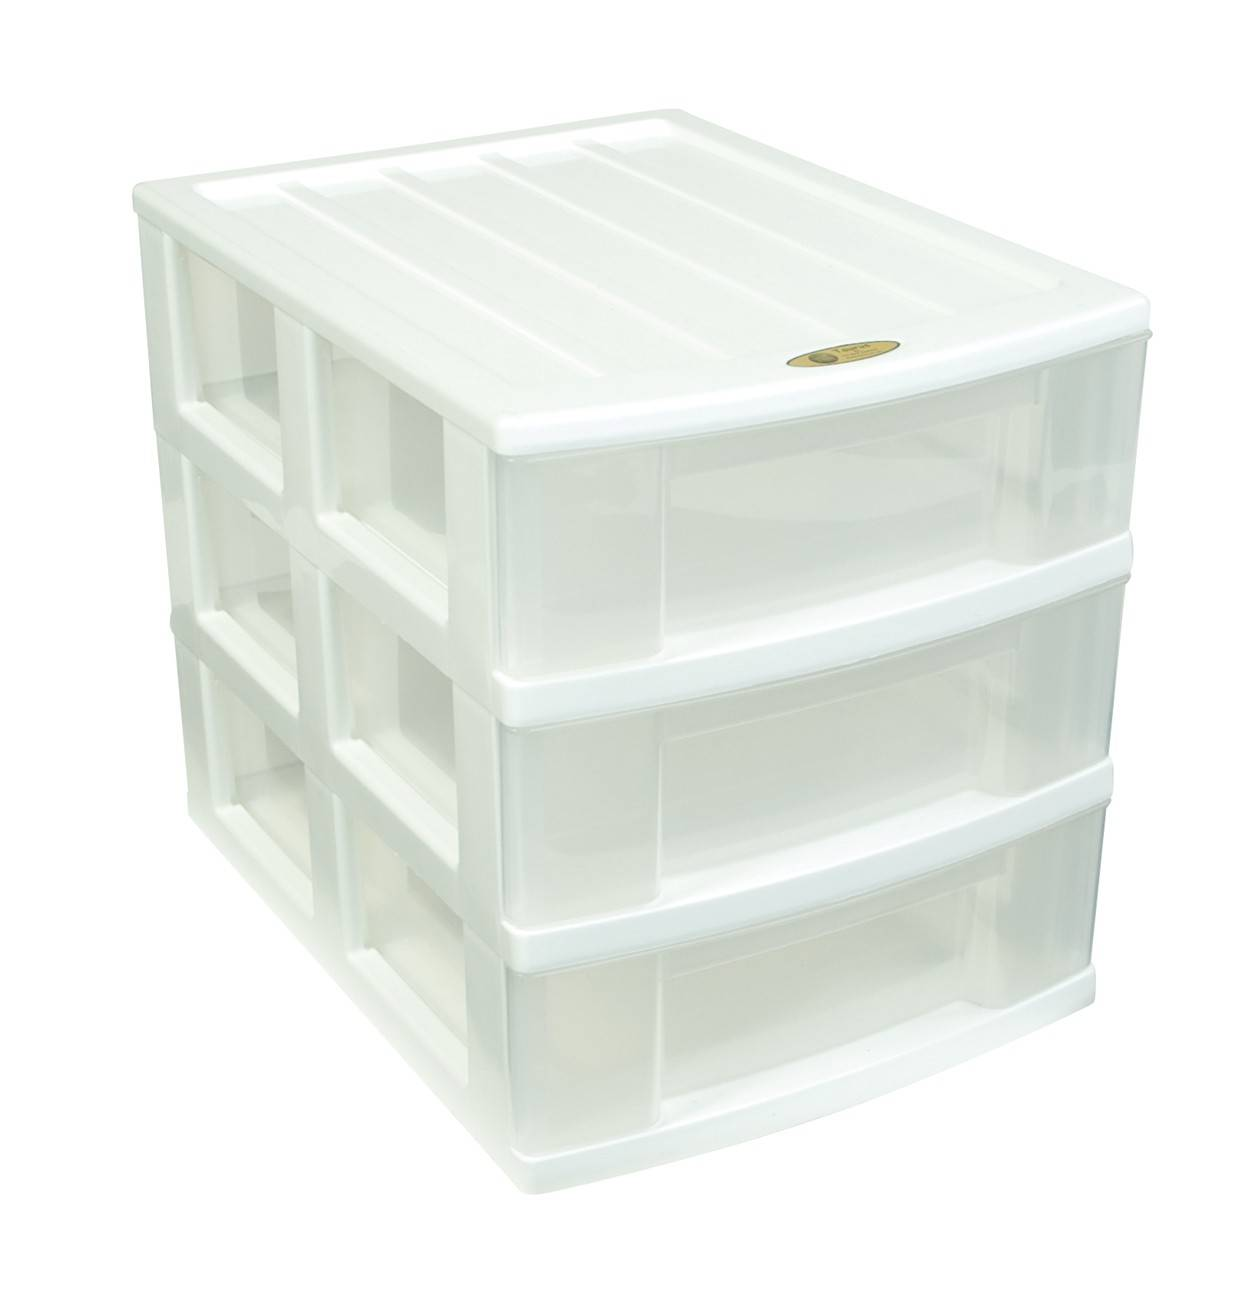 drawers for accessory desktop drawer fits multival in multidoc styroval use storage unit maximum on of organizer weiss units space shelves